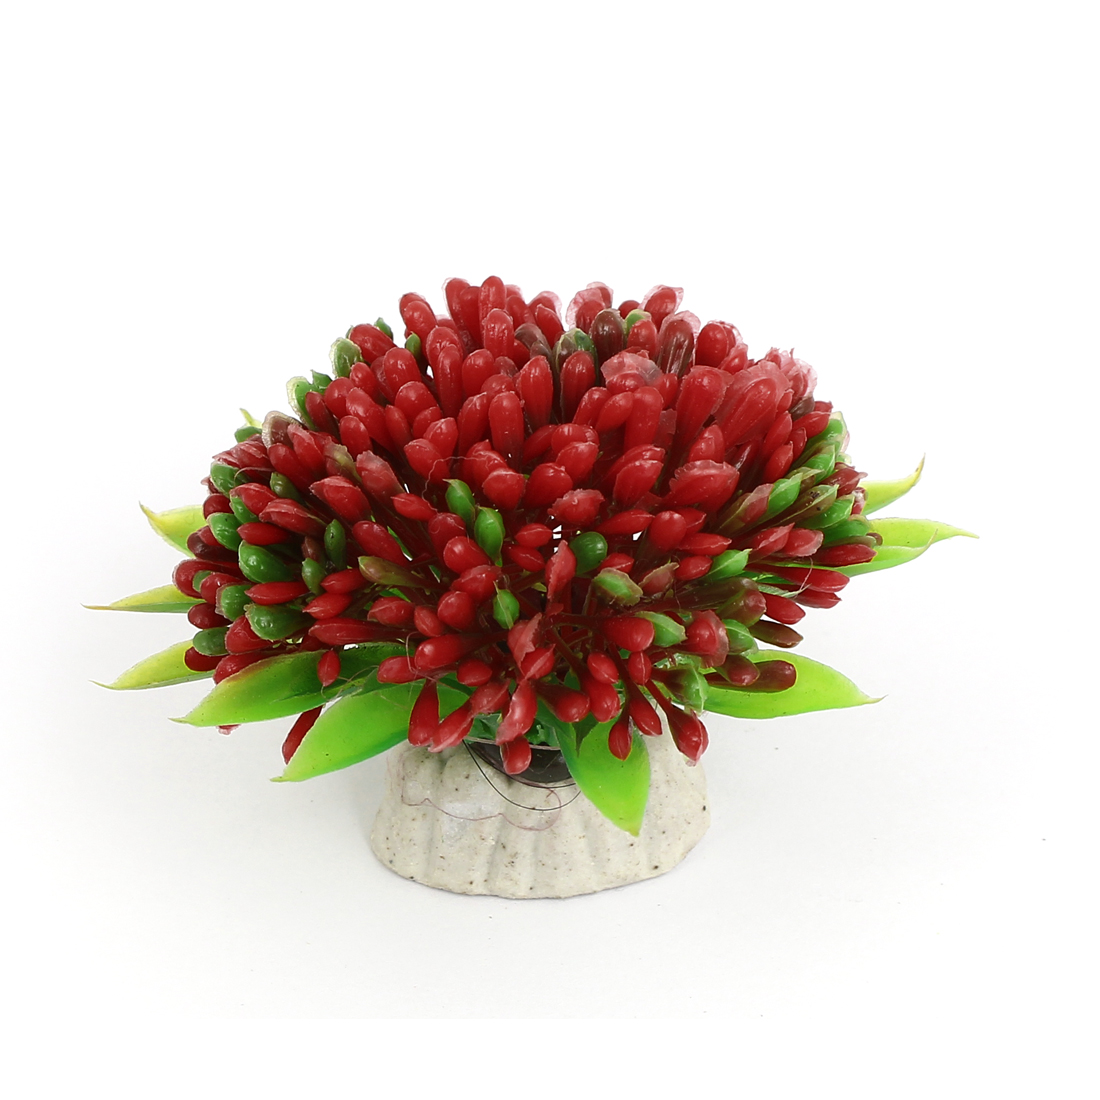 Aquarium Fish Tank Bowl Artificial Simulated Plant Bouquet Decor Ornament Red